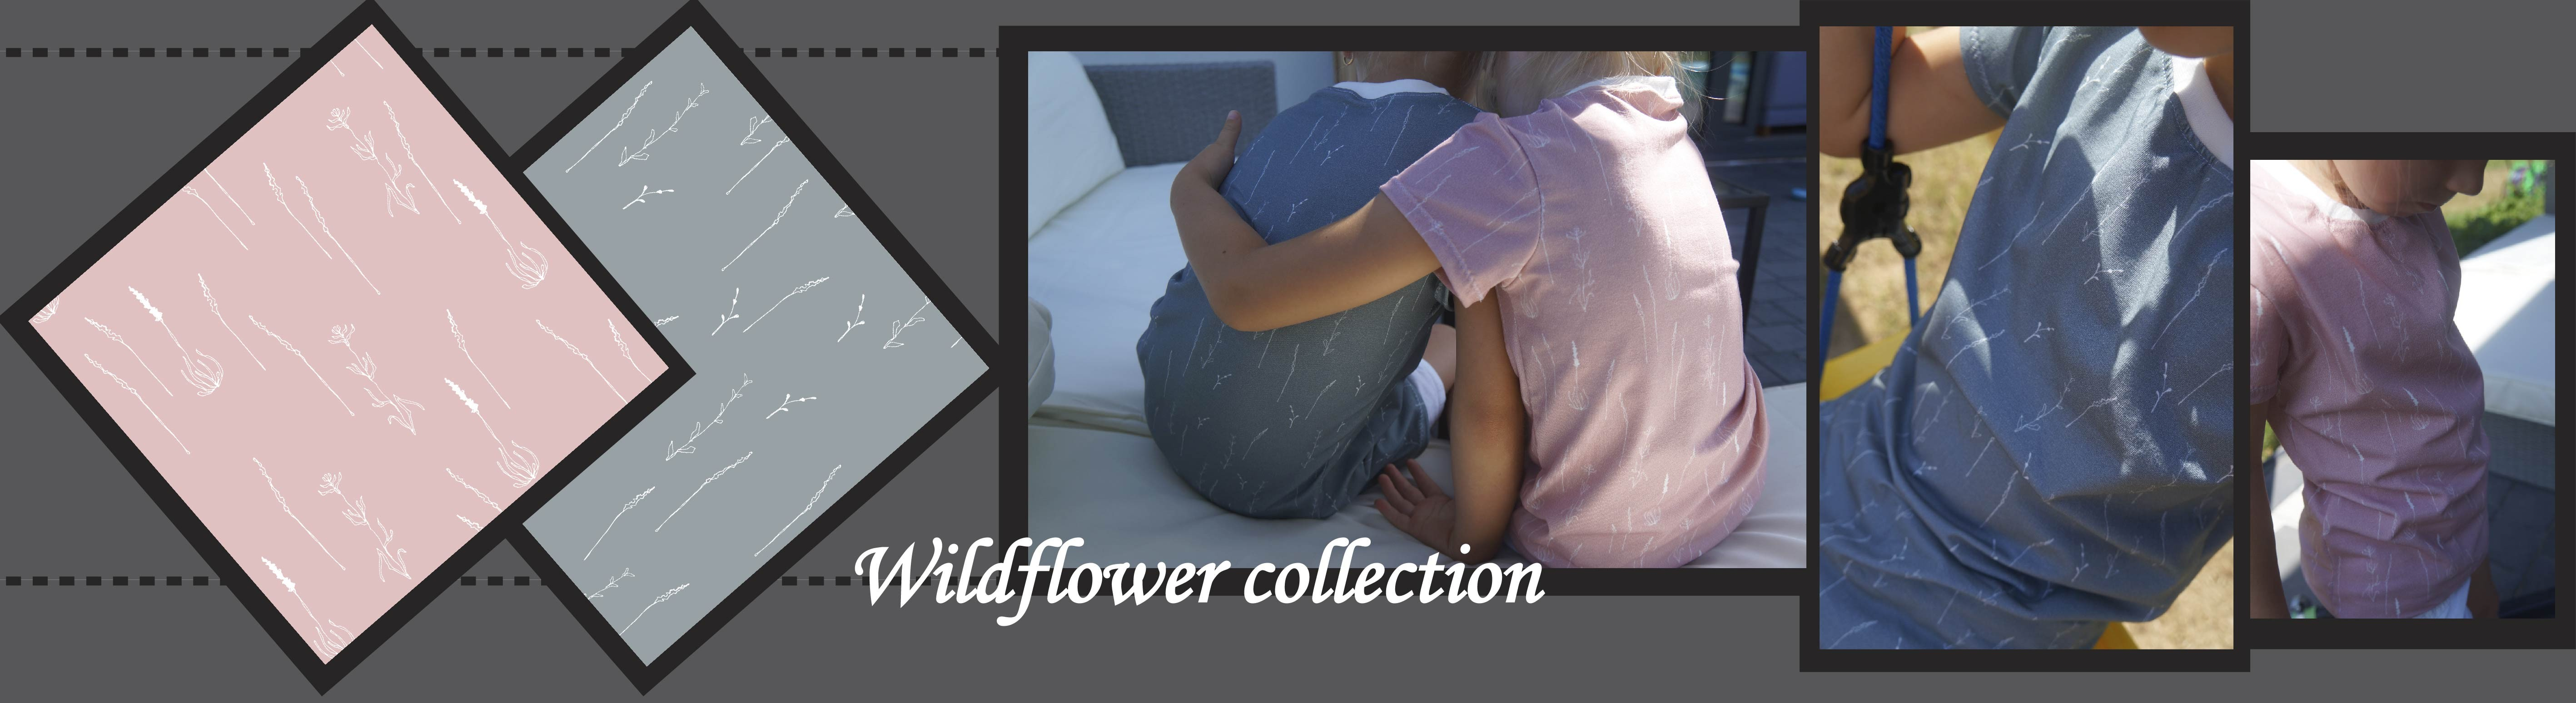 Wldflower collection